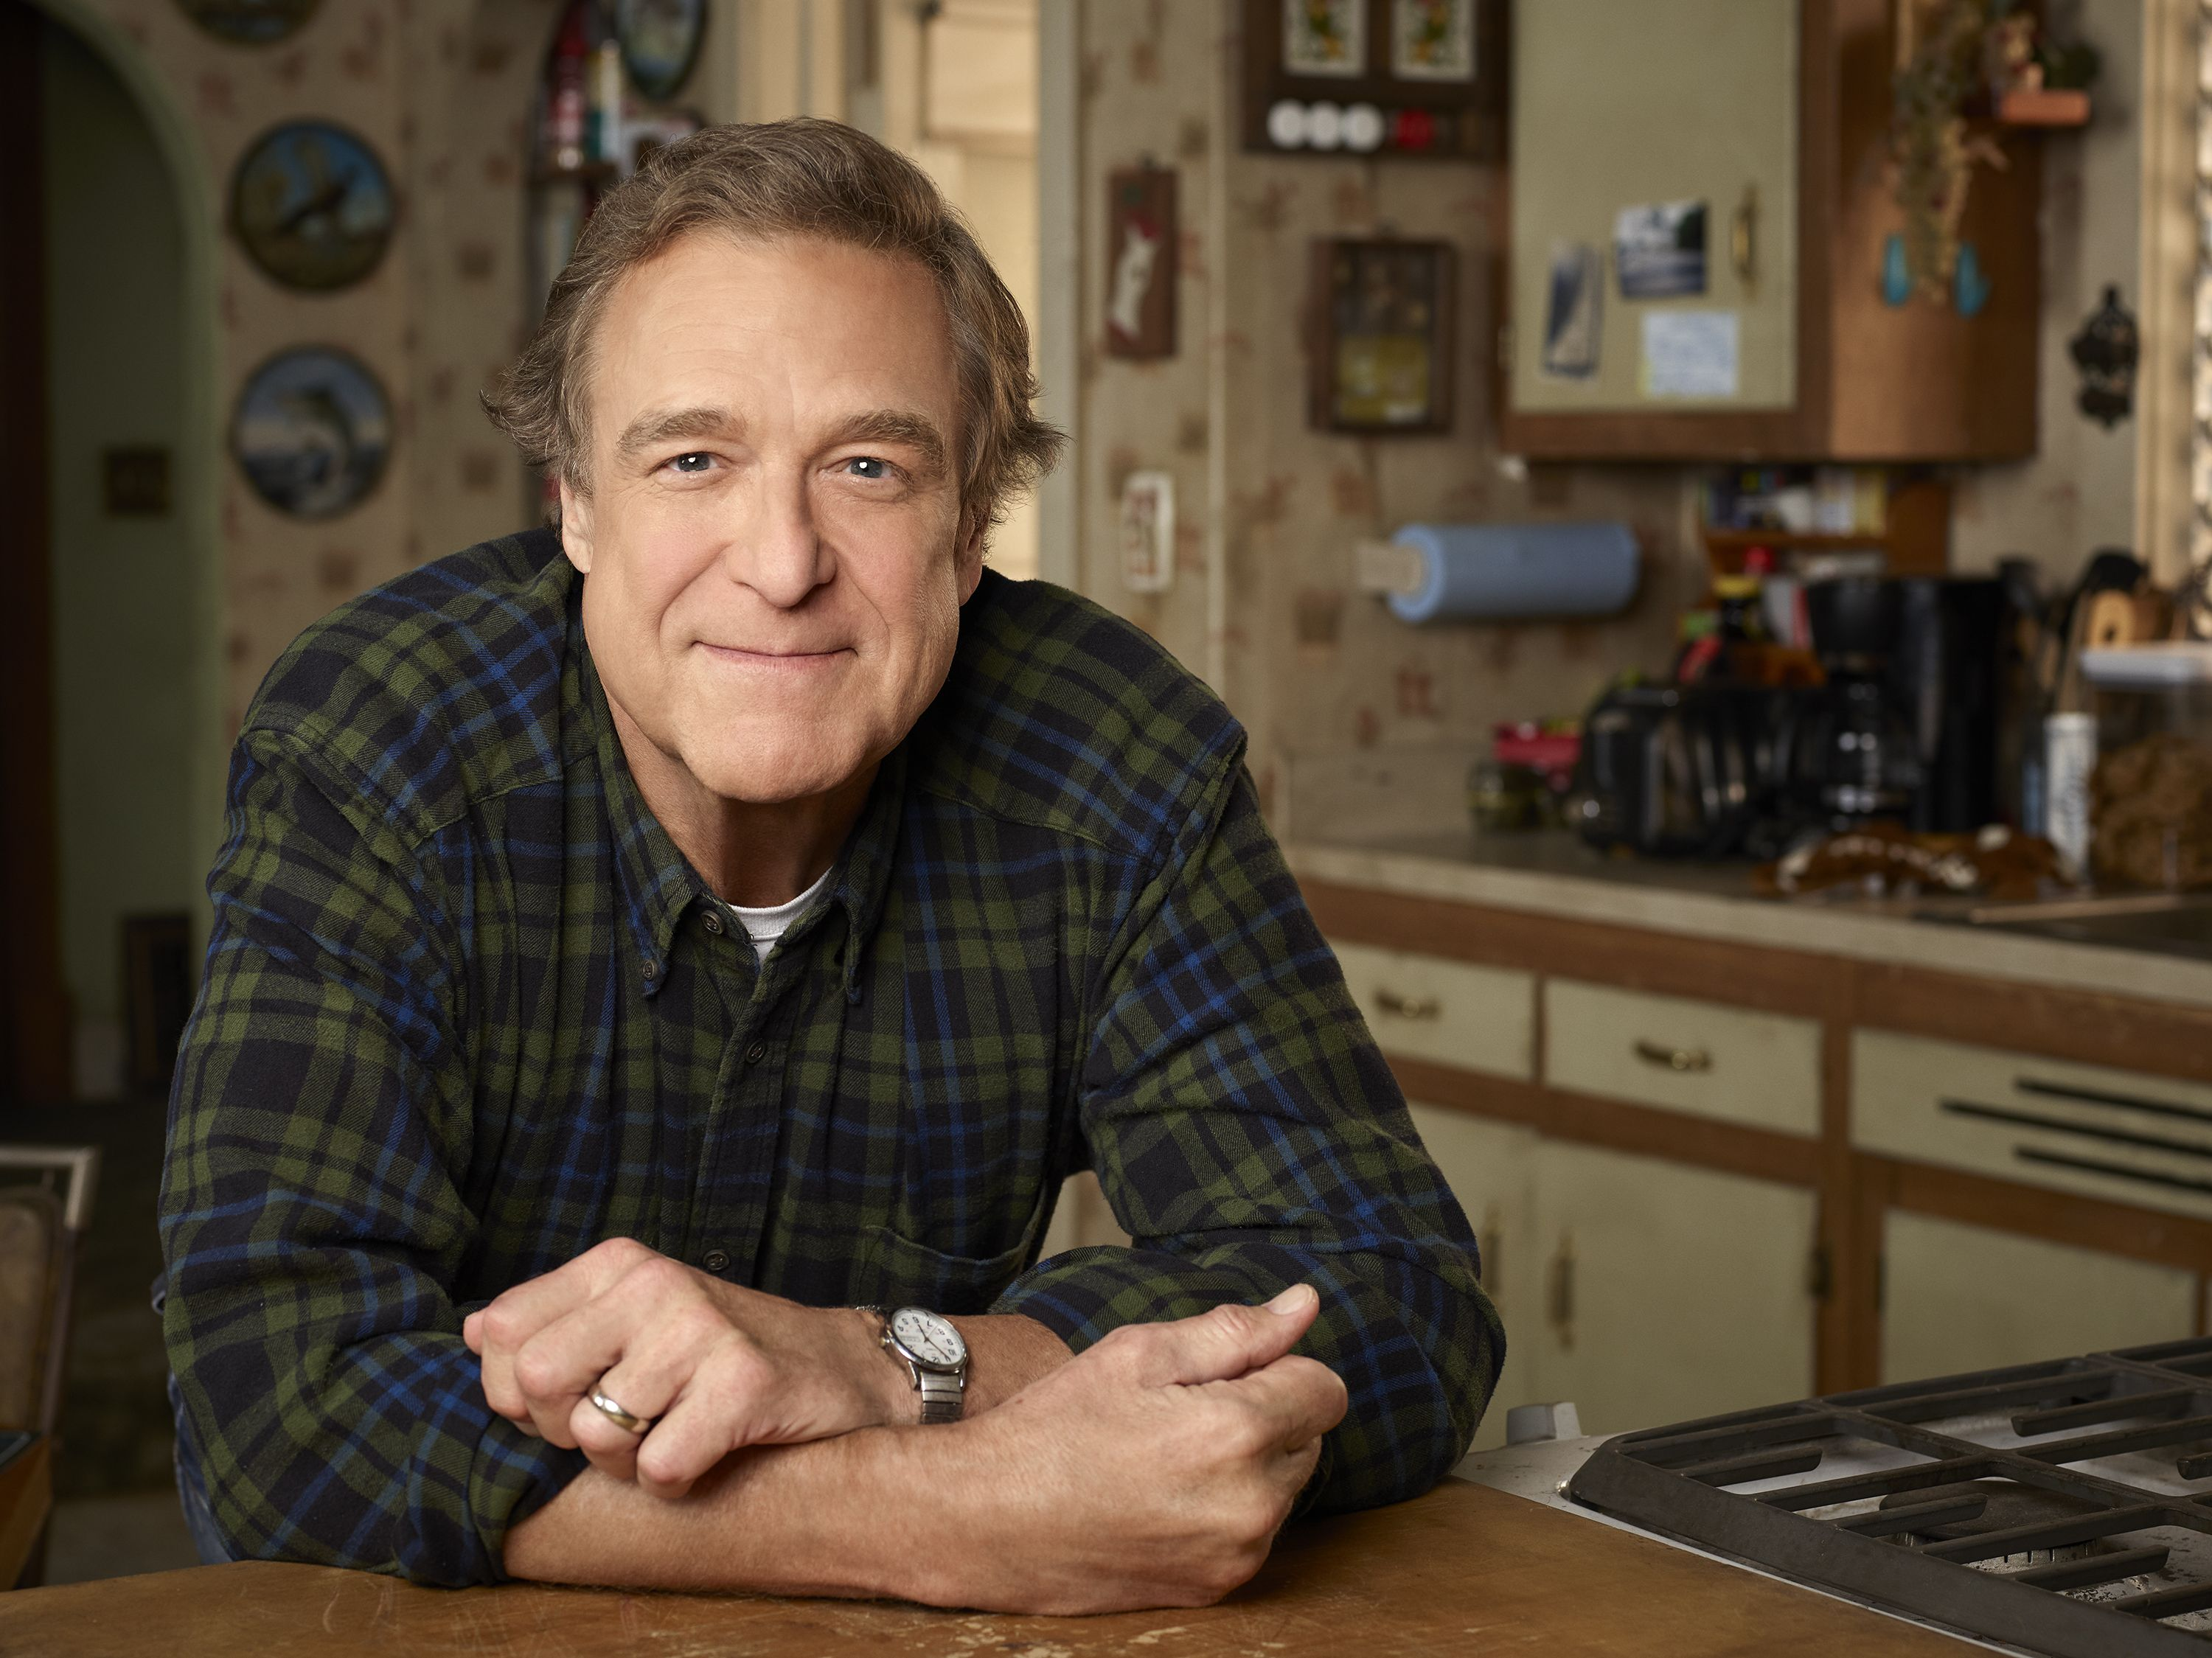 The Conners to reintroduce a season 1 character in key season 2 role